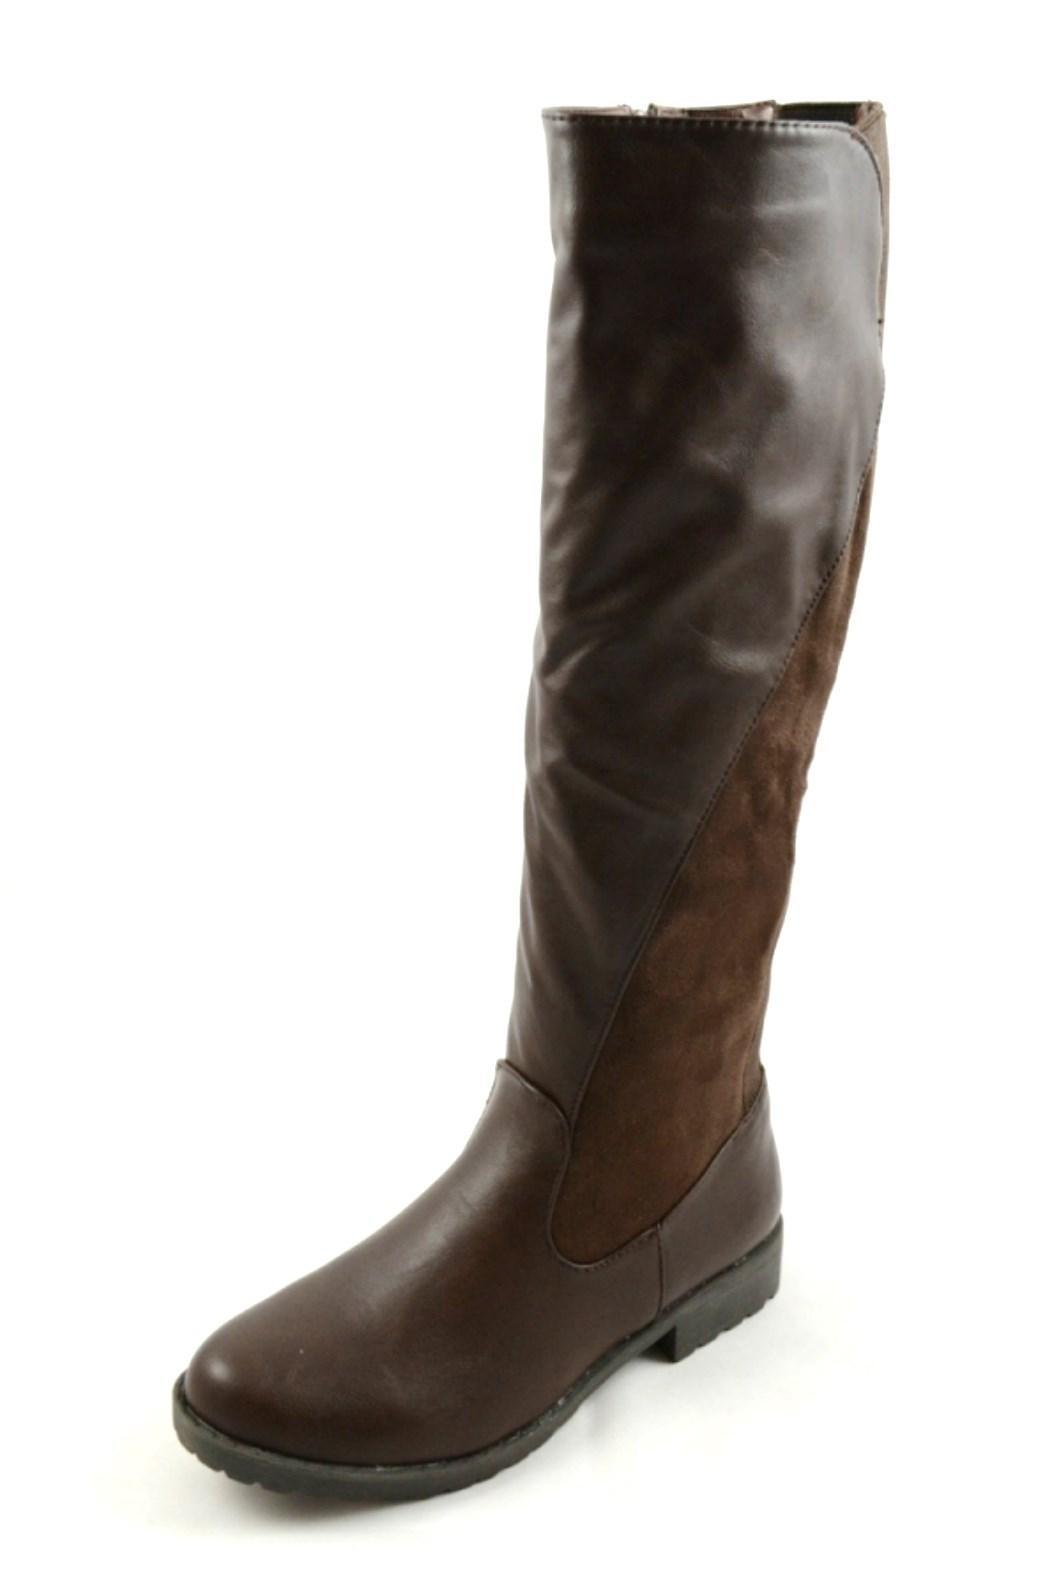 Naturalizer has women's tall boots from riding boots to knee-high boots in both regular and wide calf styles so you never have to sacrifice style for fit. So go ahead, make tracks in winter boots or make an impression in dress boots.